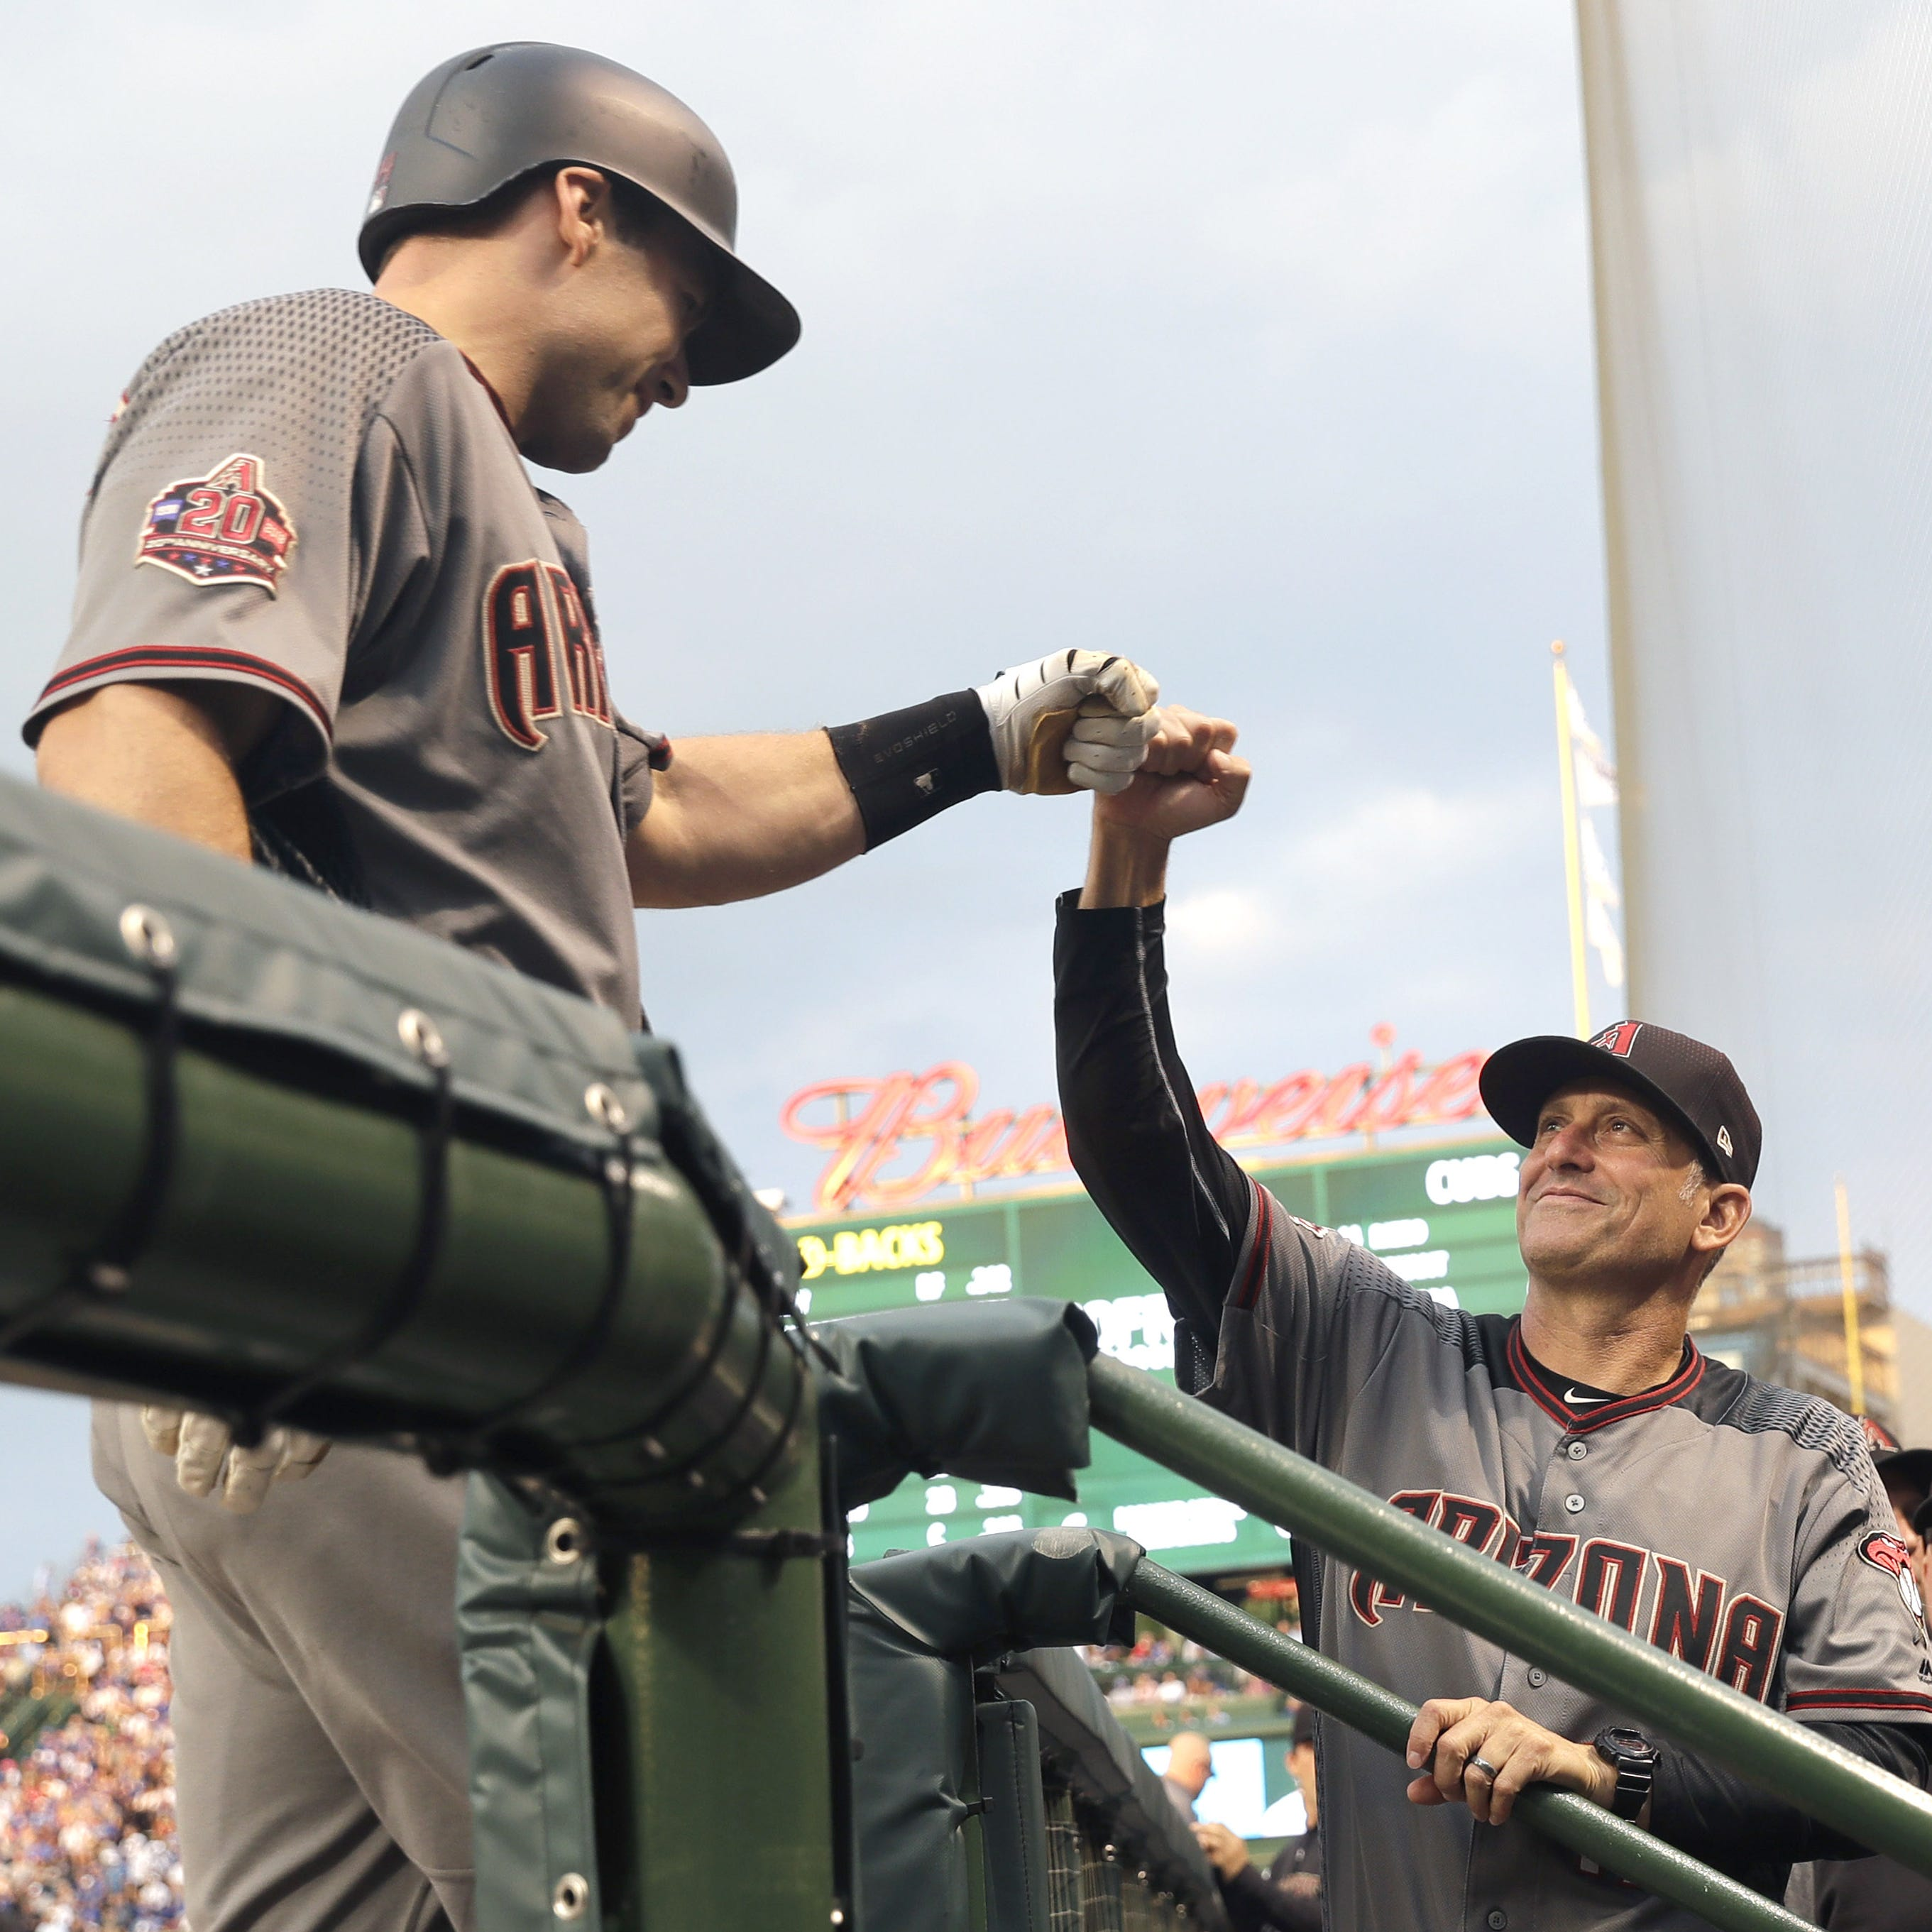 Torey Lovullo on Paul Goldschmidt trade: 'One of the hardest days I ever had'